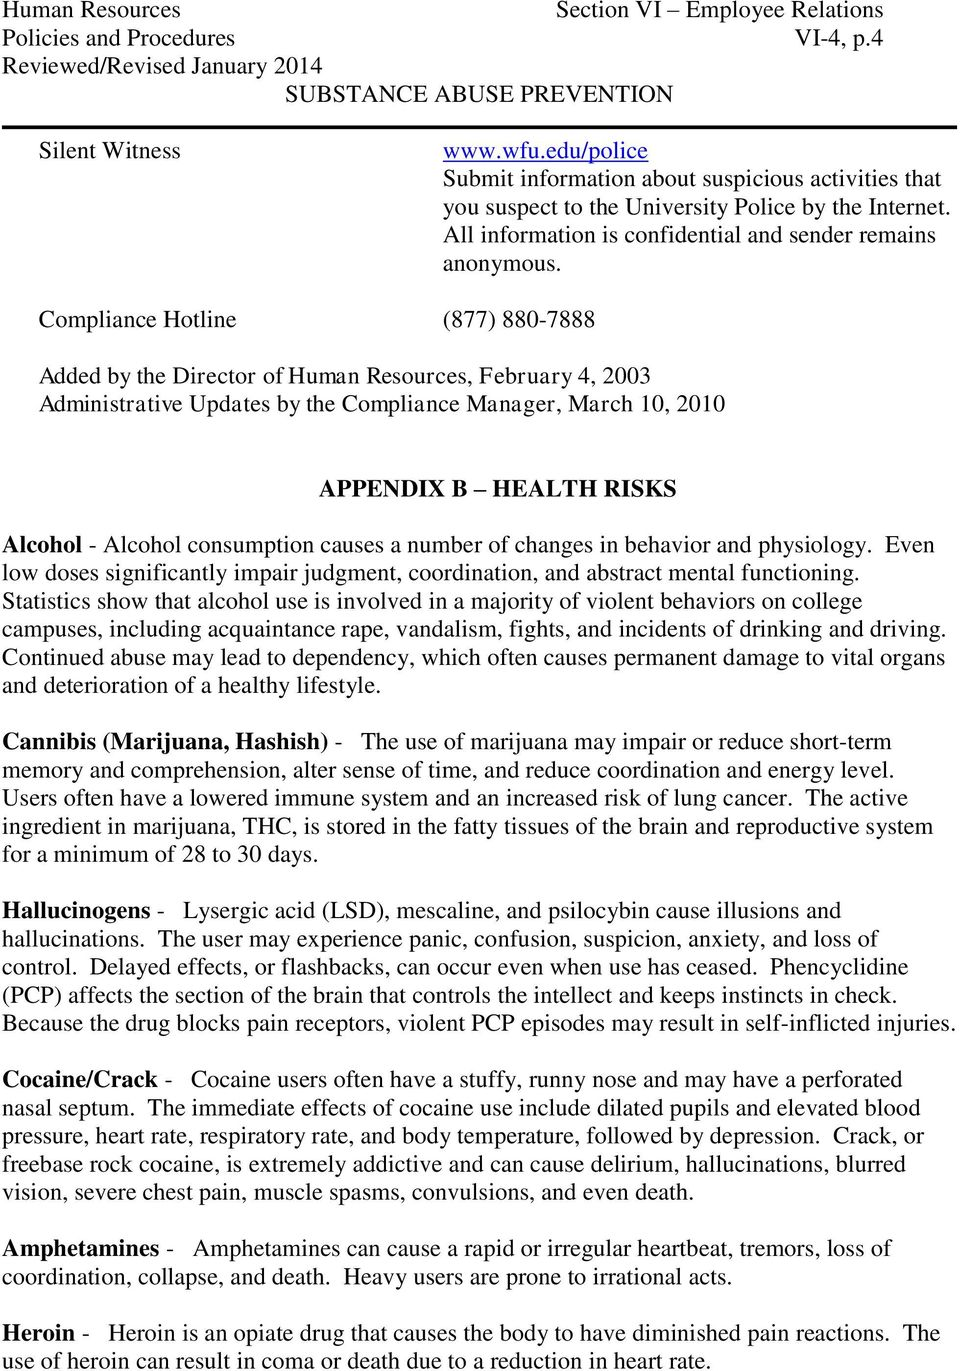 Compliance Hotline (877) 880-7888 Added by the Director of Human Resources, February 4, 2003 Administrative Updates by the Compliance Manager, March 10, 2010 APPENDIX B HEALTH RISKS Alcohol - Alcohol